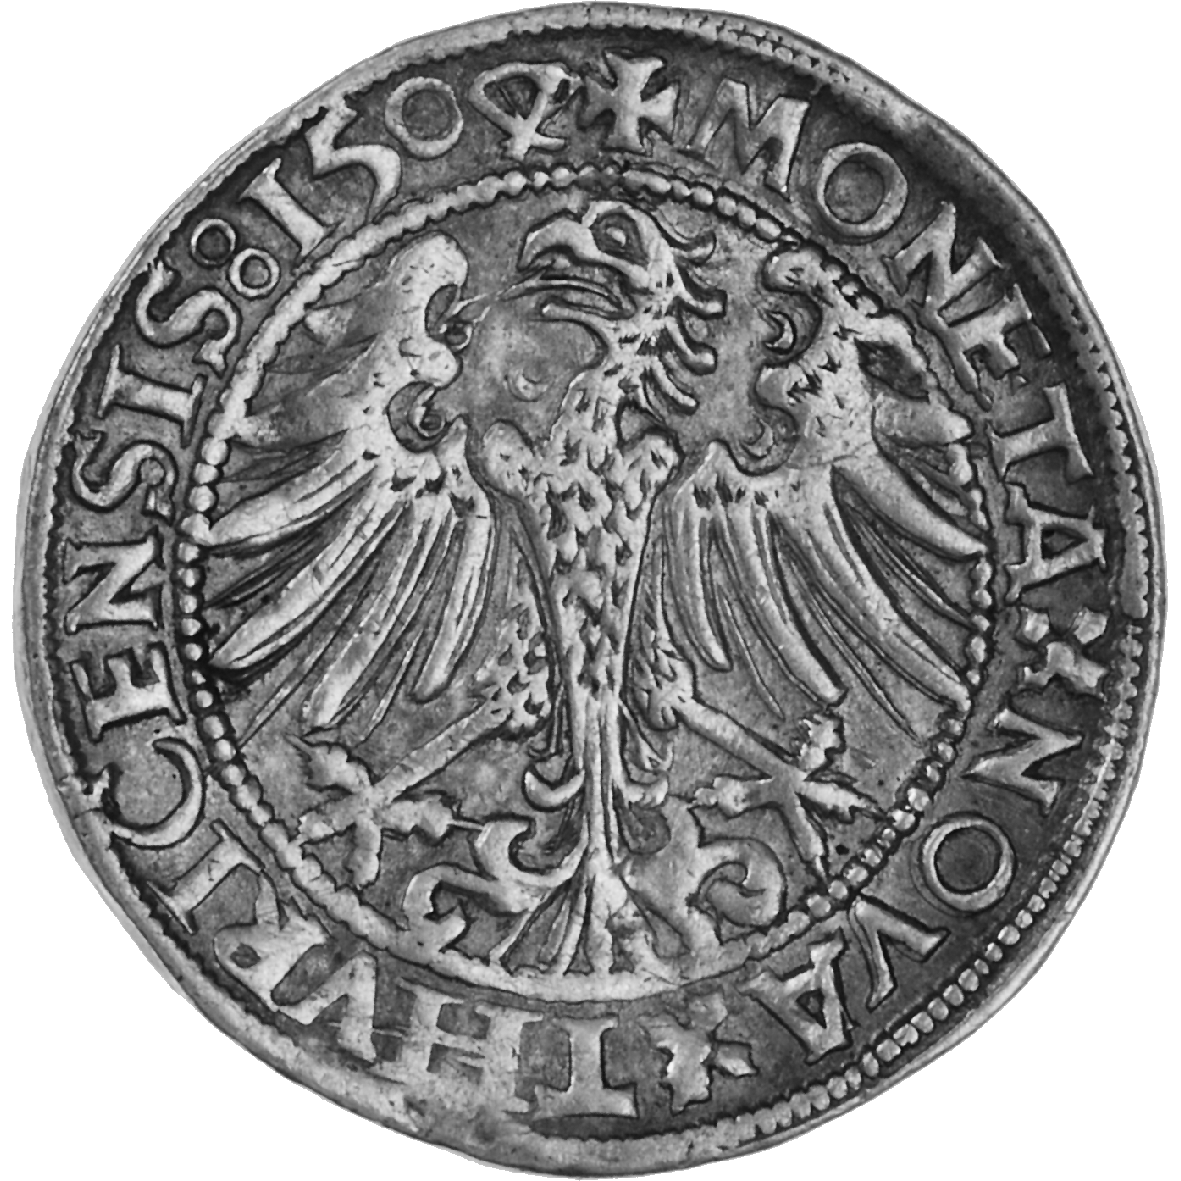 Holy Roman Empire, City of Zurich, Dicken 1504 (reverse)